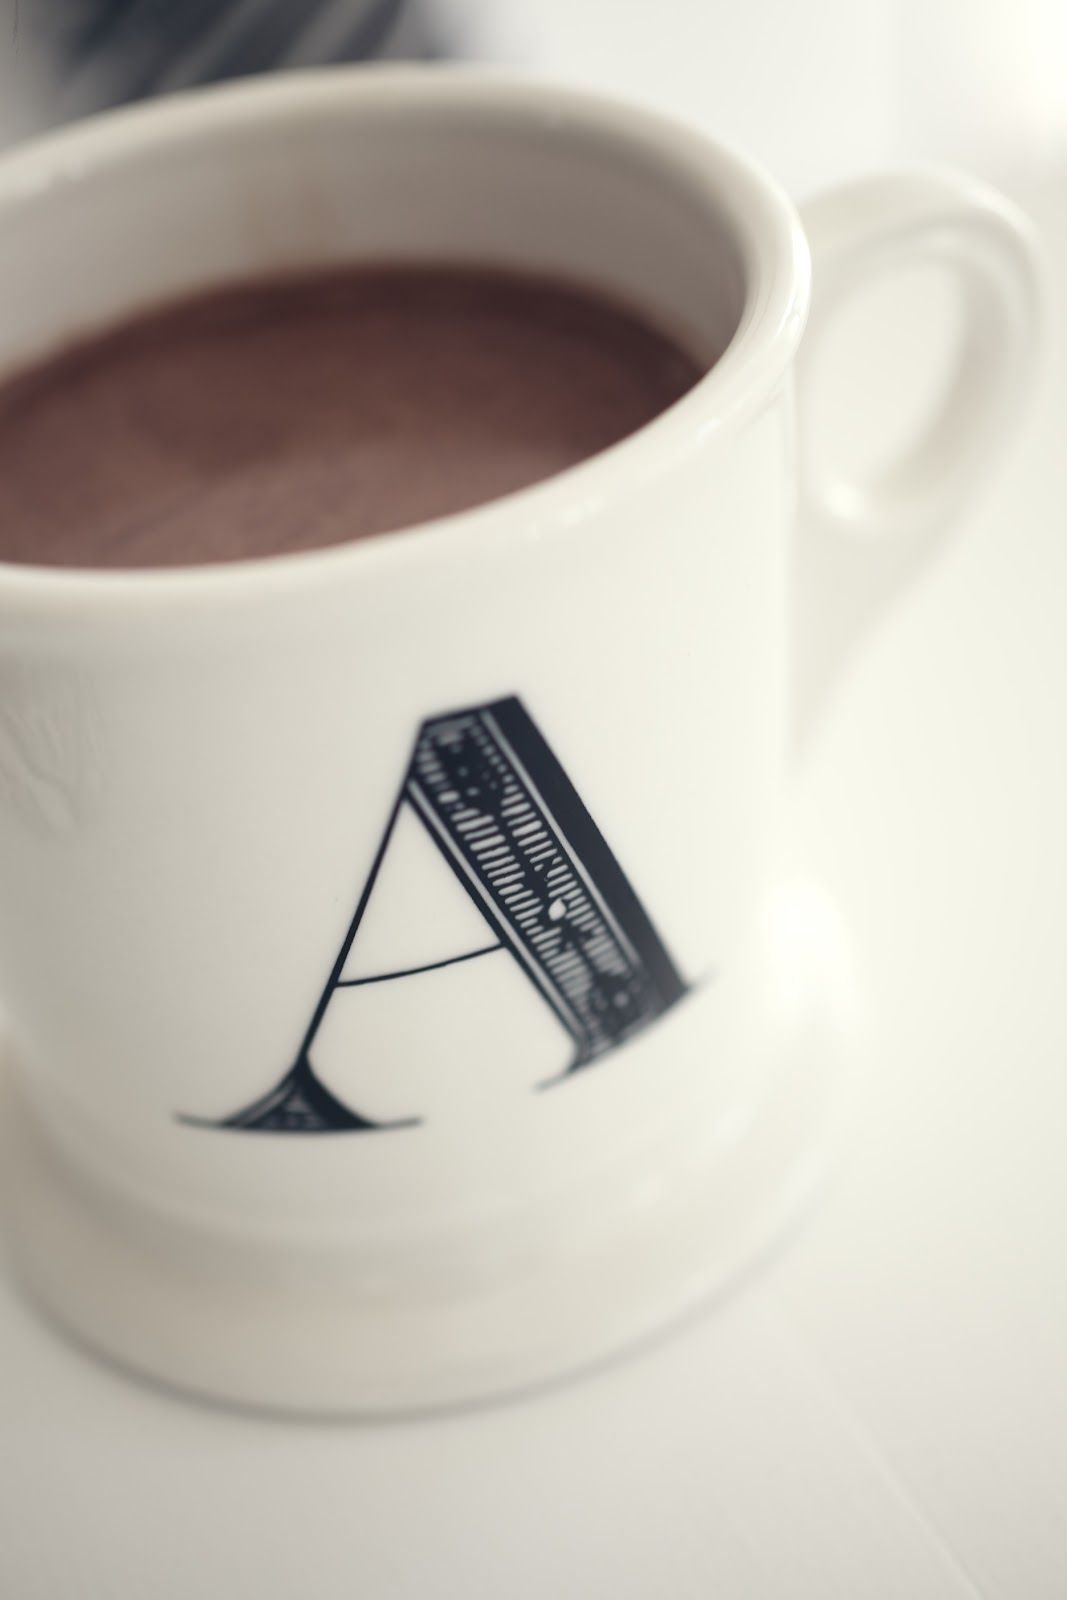 http://mykeminutter.blogspot.no:   Fall is here. Hot cocoa in a mug from Anthropologie.